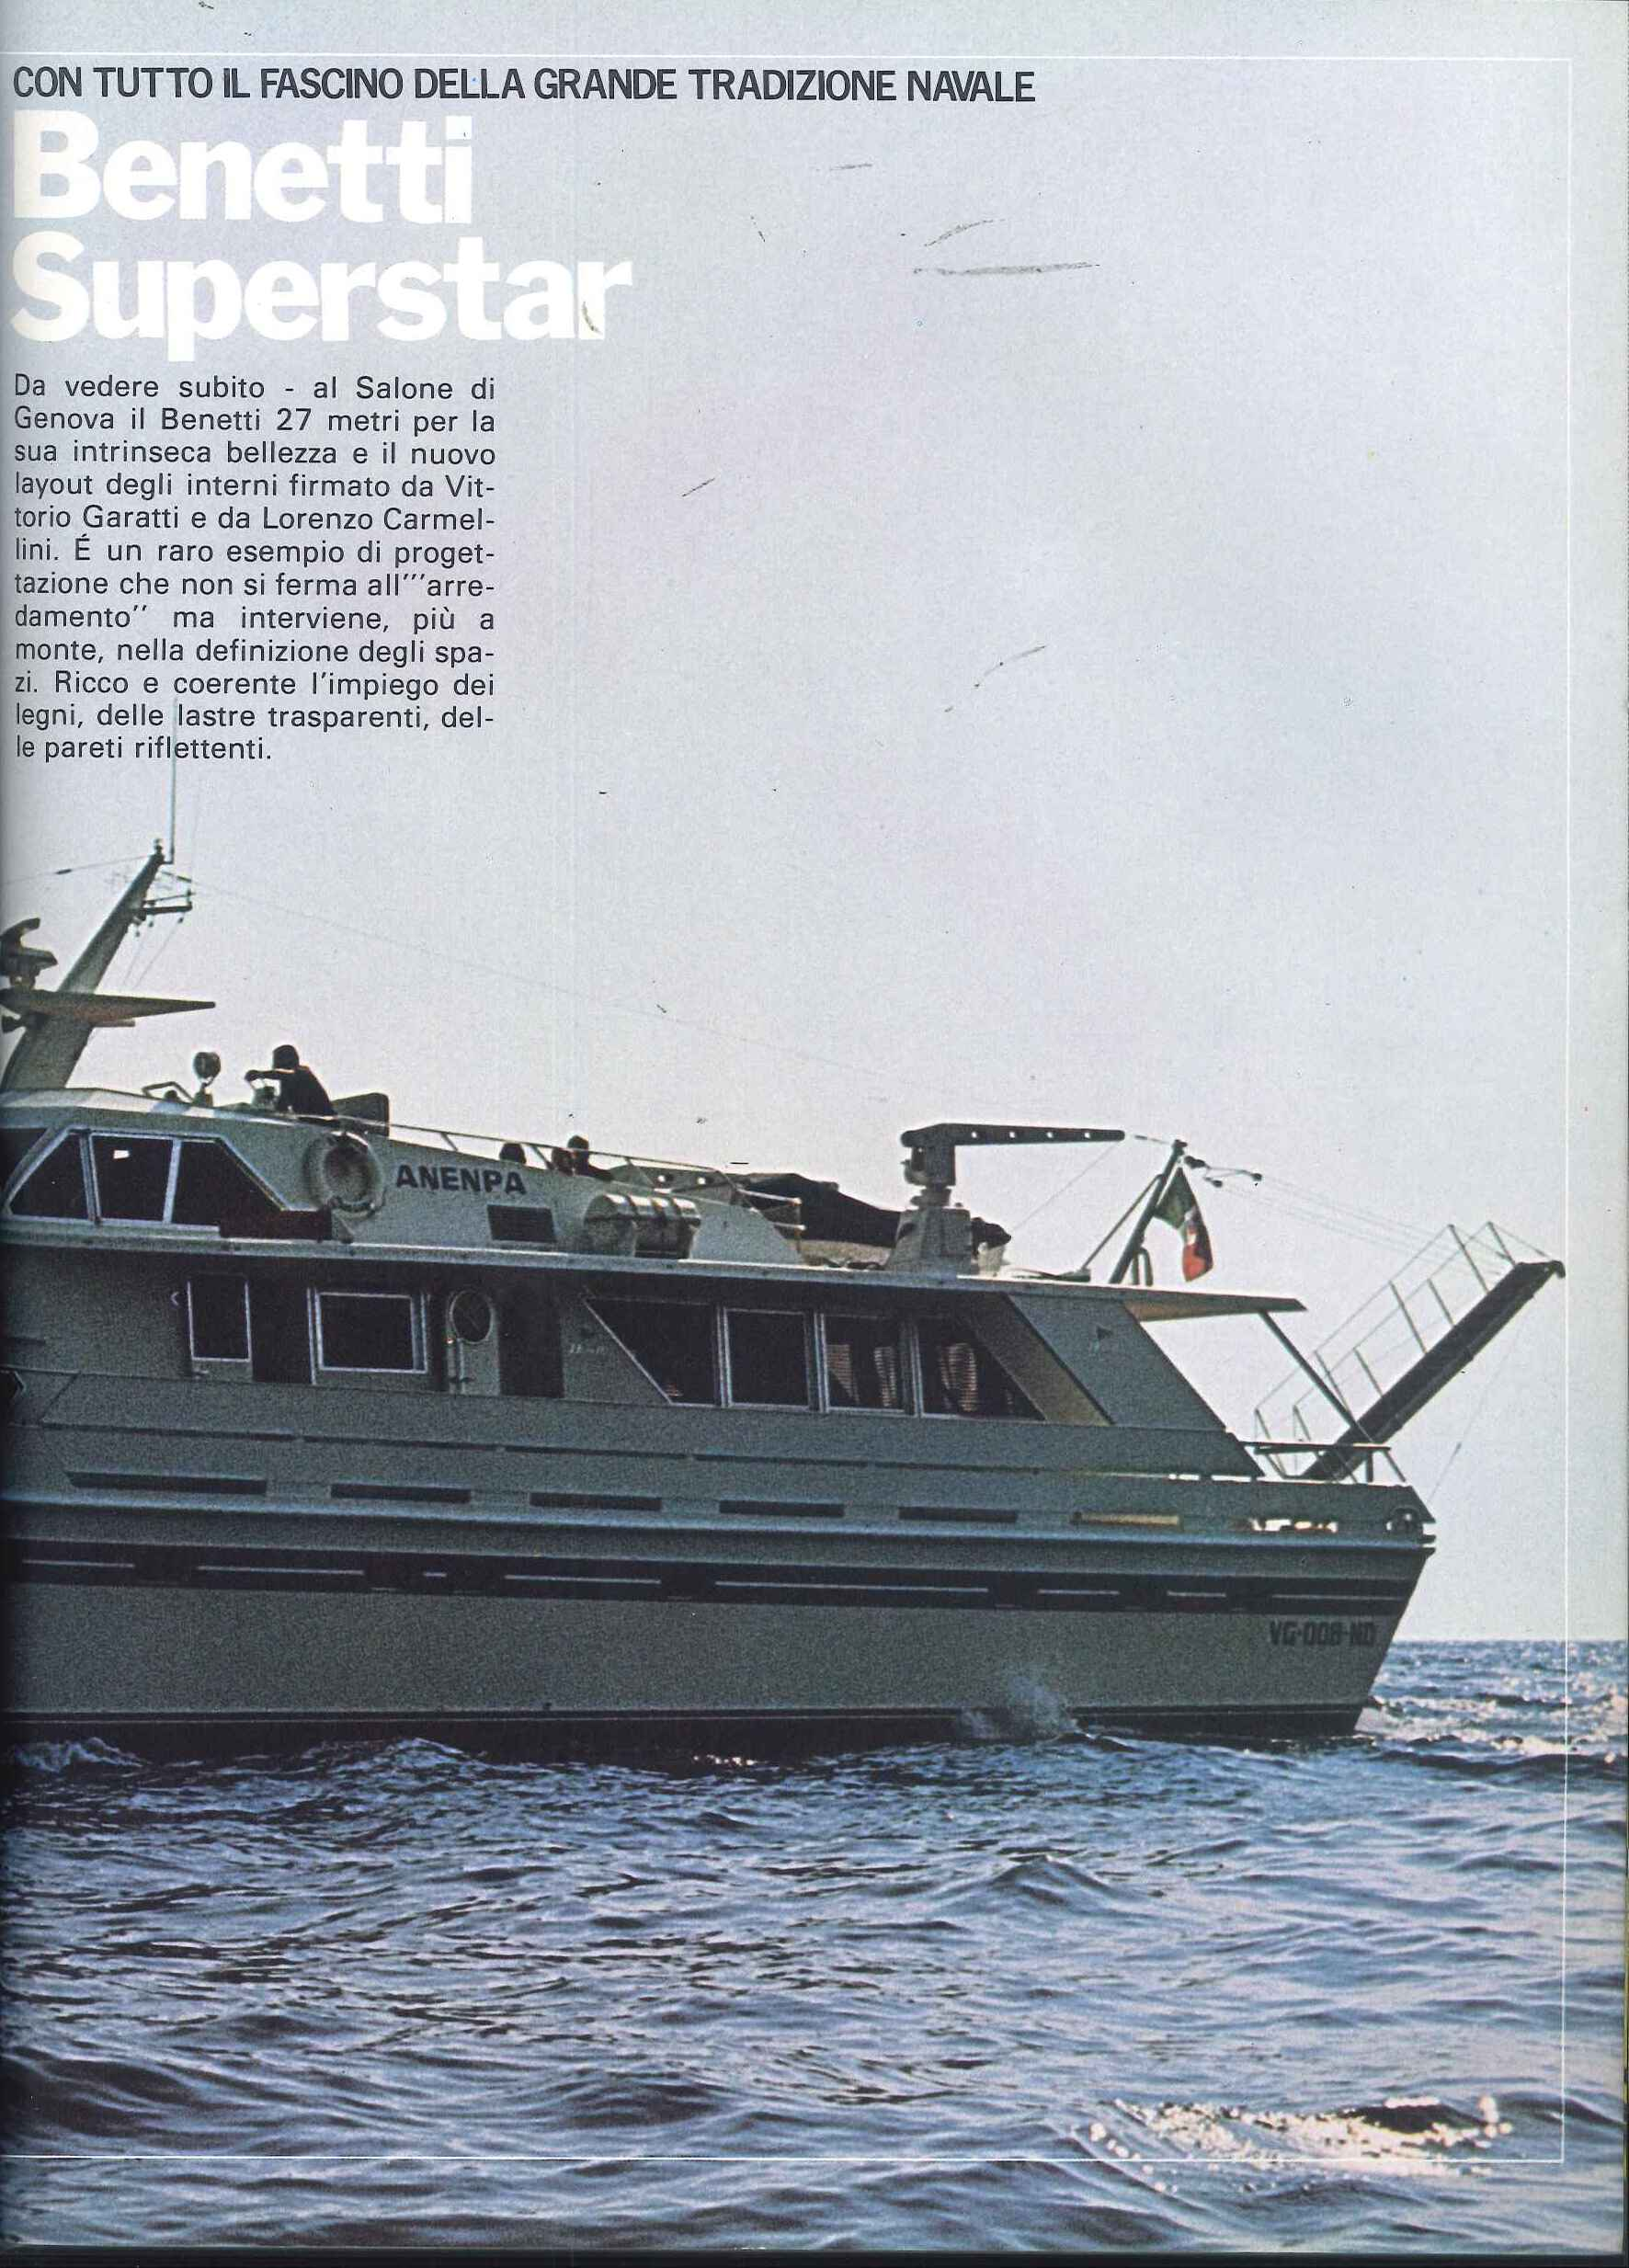 1977 09 PRESS MOTORBOATS UOMO MARE (2).jpg